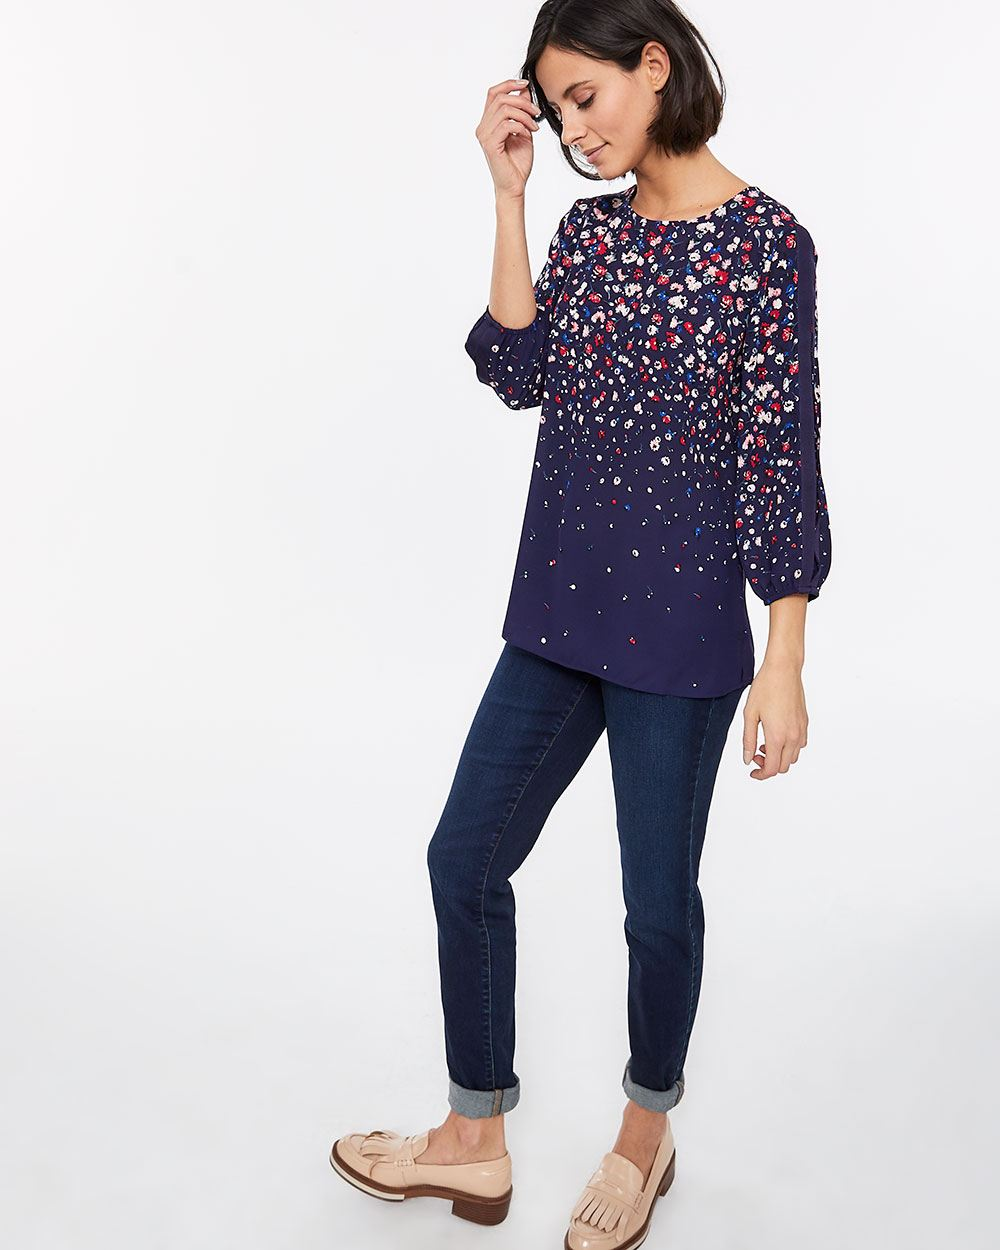 3/4 Puff Sleeve Blouse